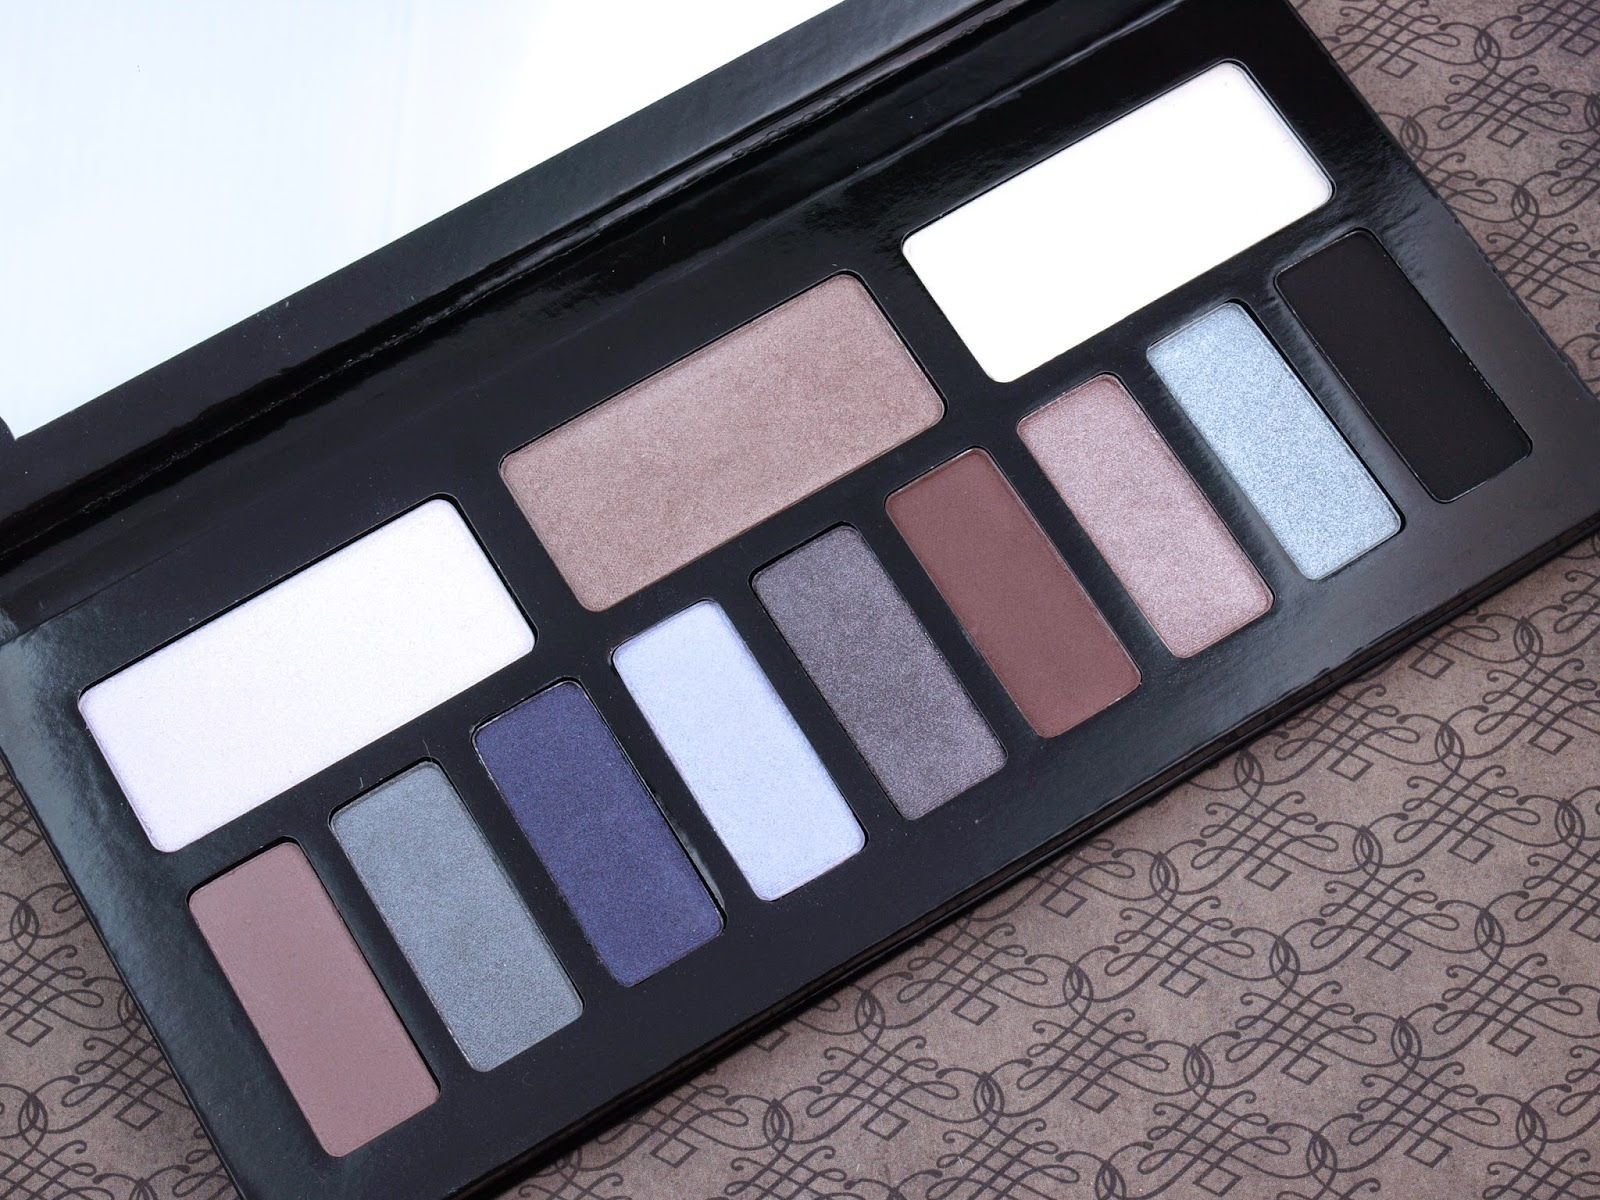 Kat Von D Innerstellar Eyeshadow Palette: Review and Swatches